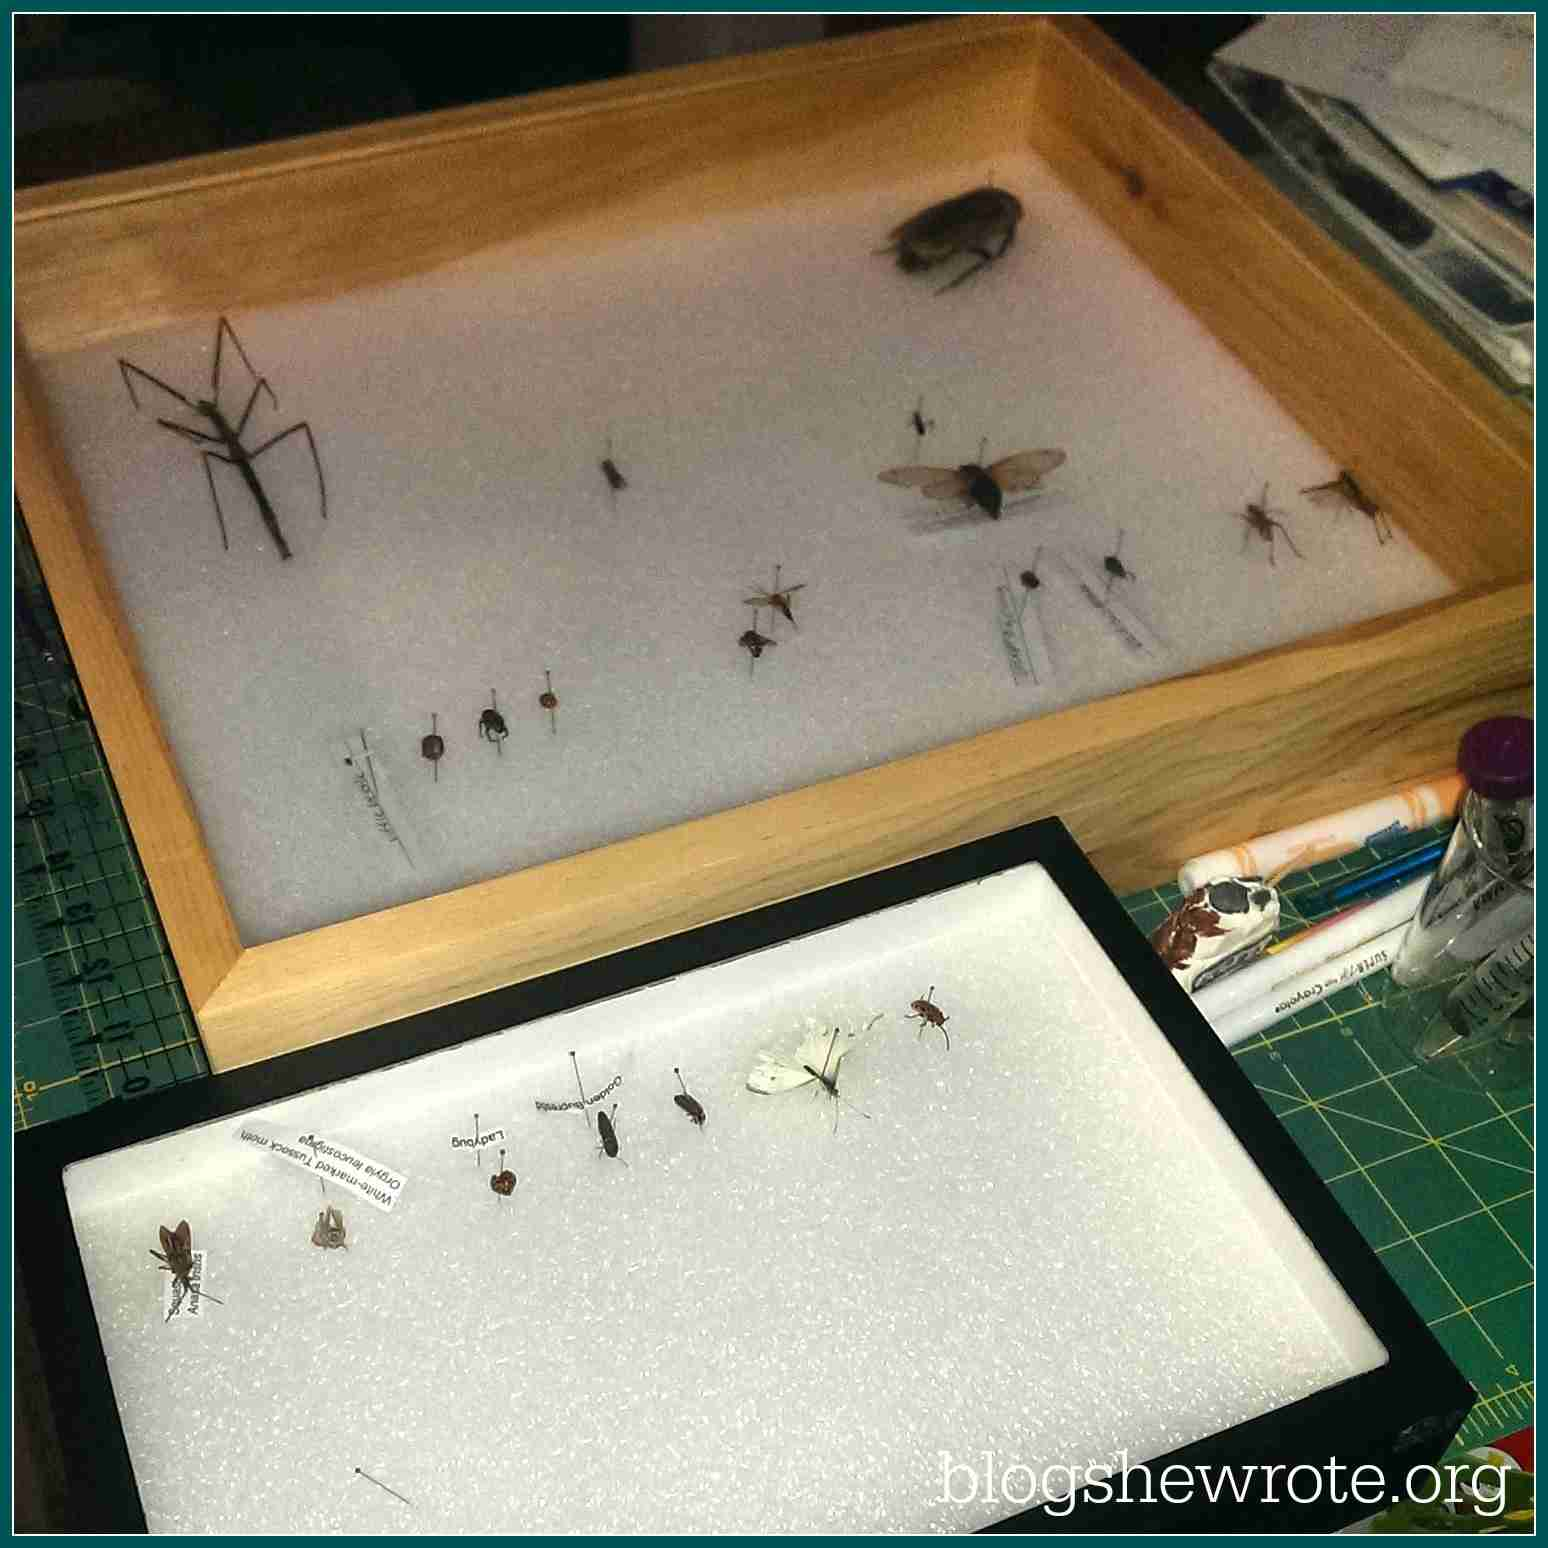 Blog, She Wrote: Must Have Equipment for Entomology